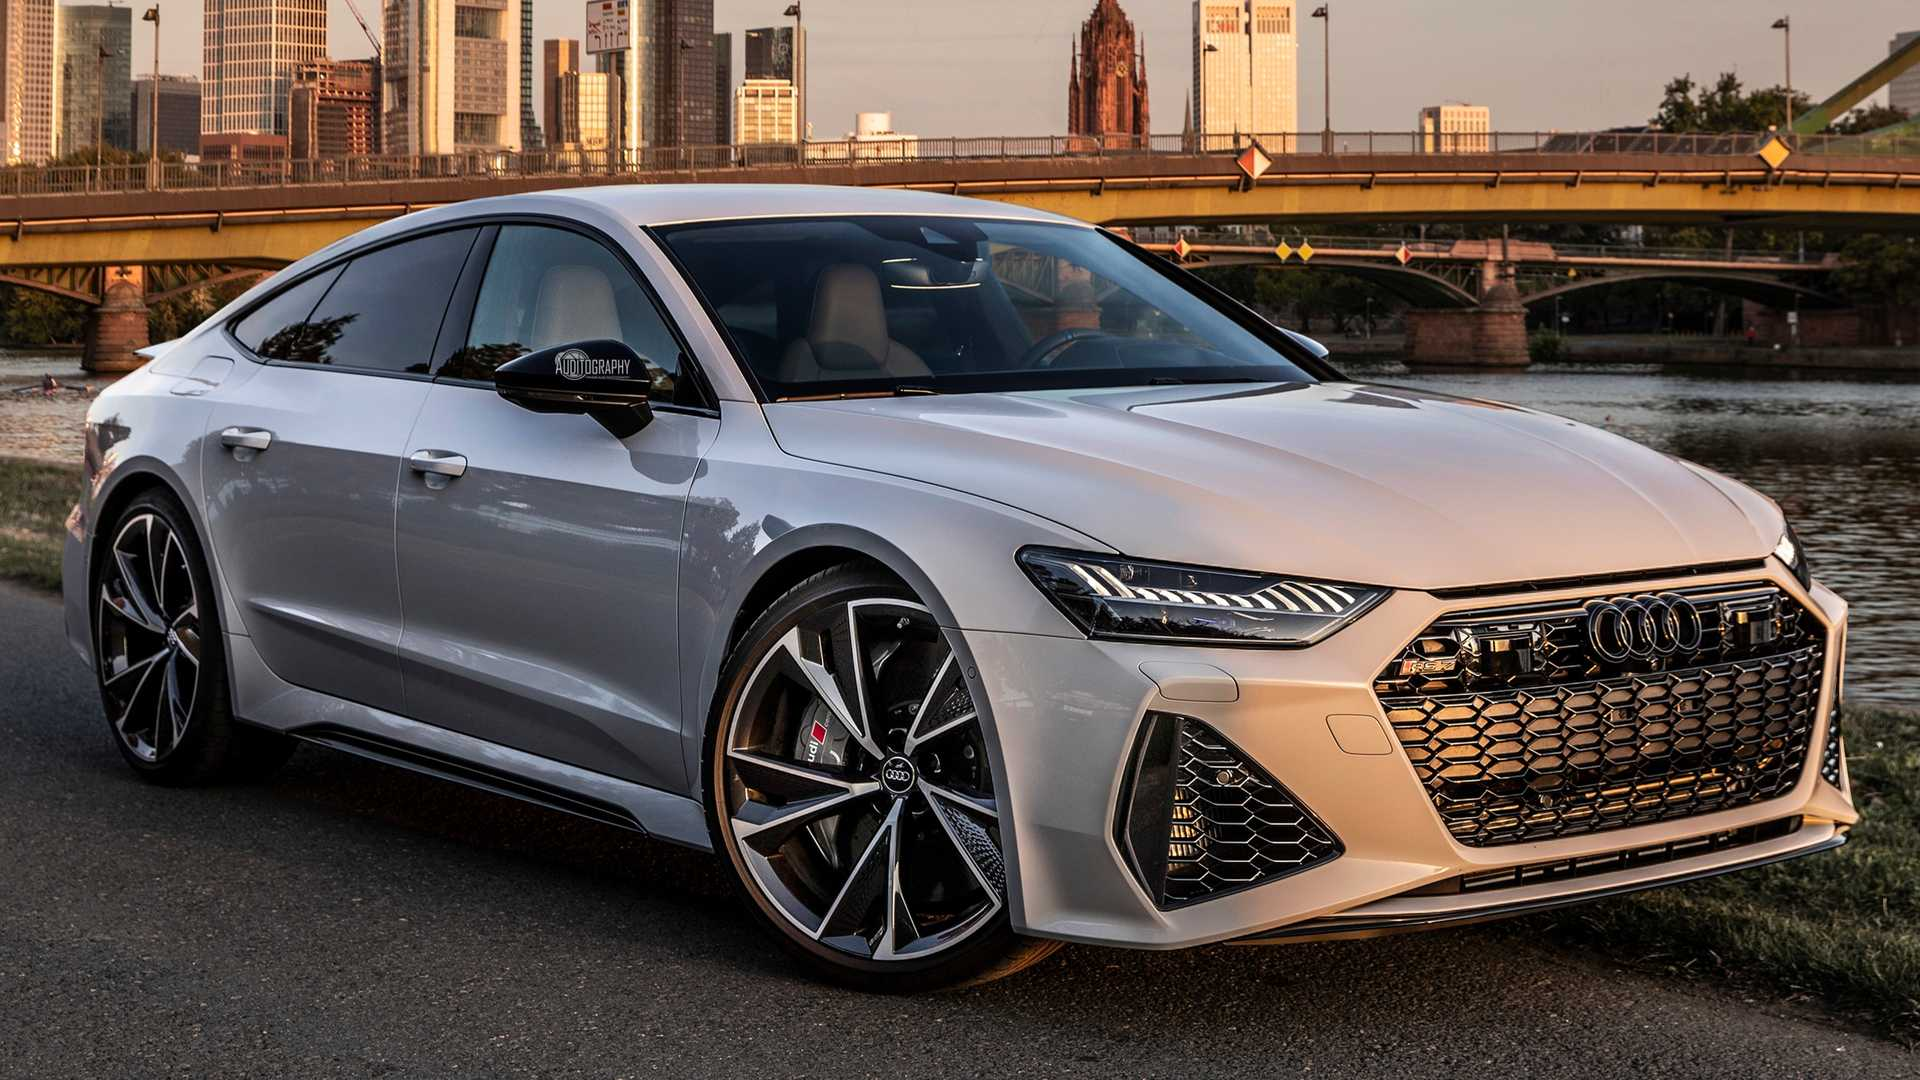 See The 2020 Audi Rs7 Sportback Hit 62 Mph In 3 4 Seconds Wallpaper Iphone 5 Cityconnectapps